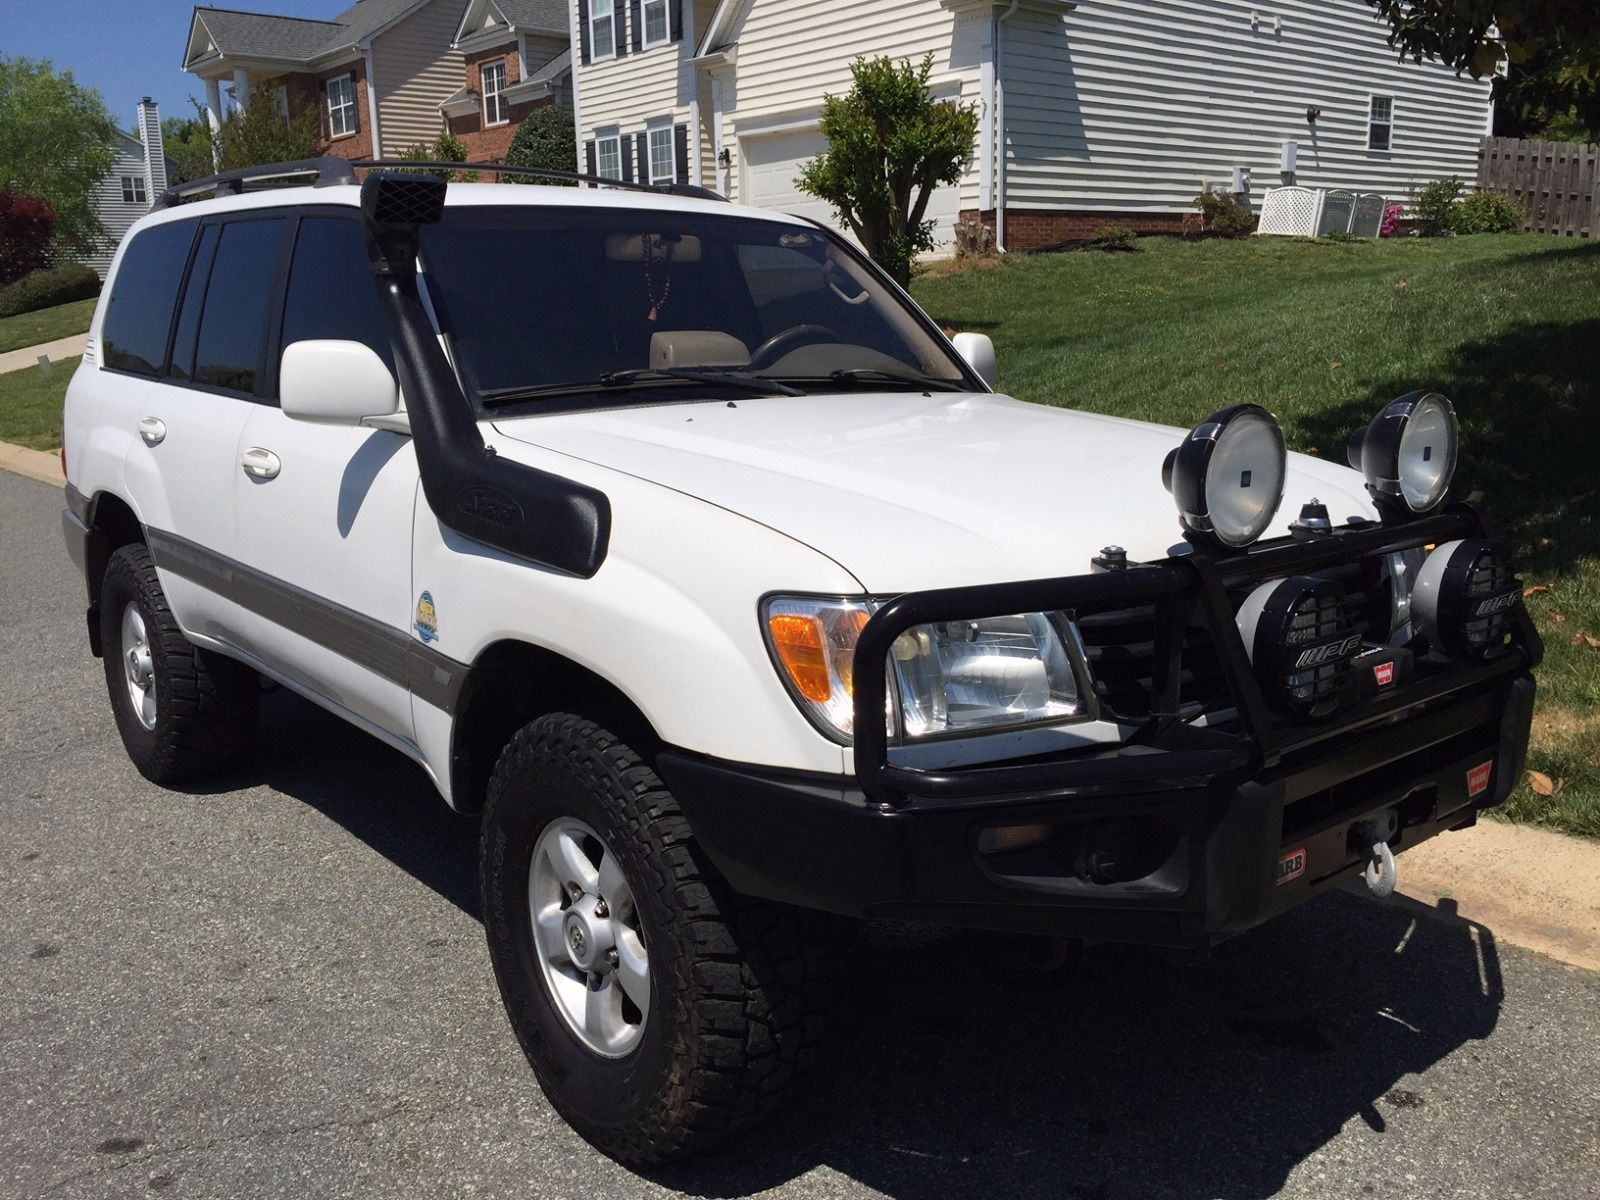 2000 toyota land cruiser 100 for sale toyota land cruiser 100 land cruiser toyota land cruiser 2000 toyota land cruiser 100 for sale